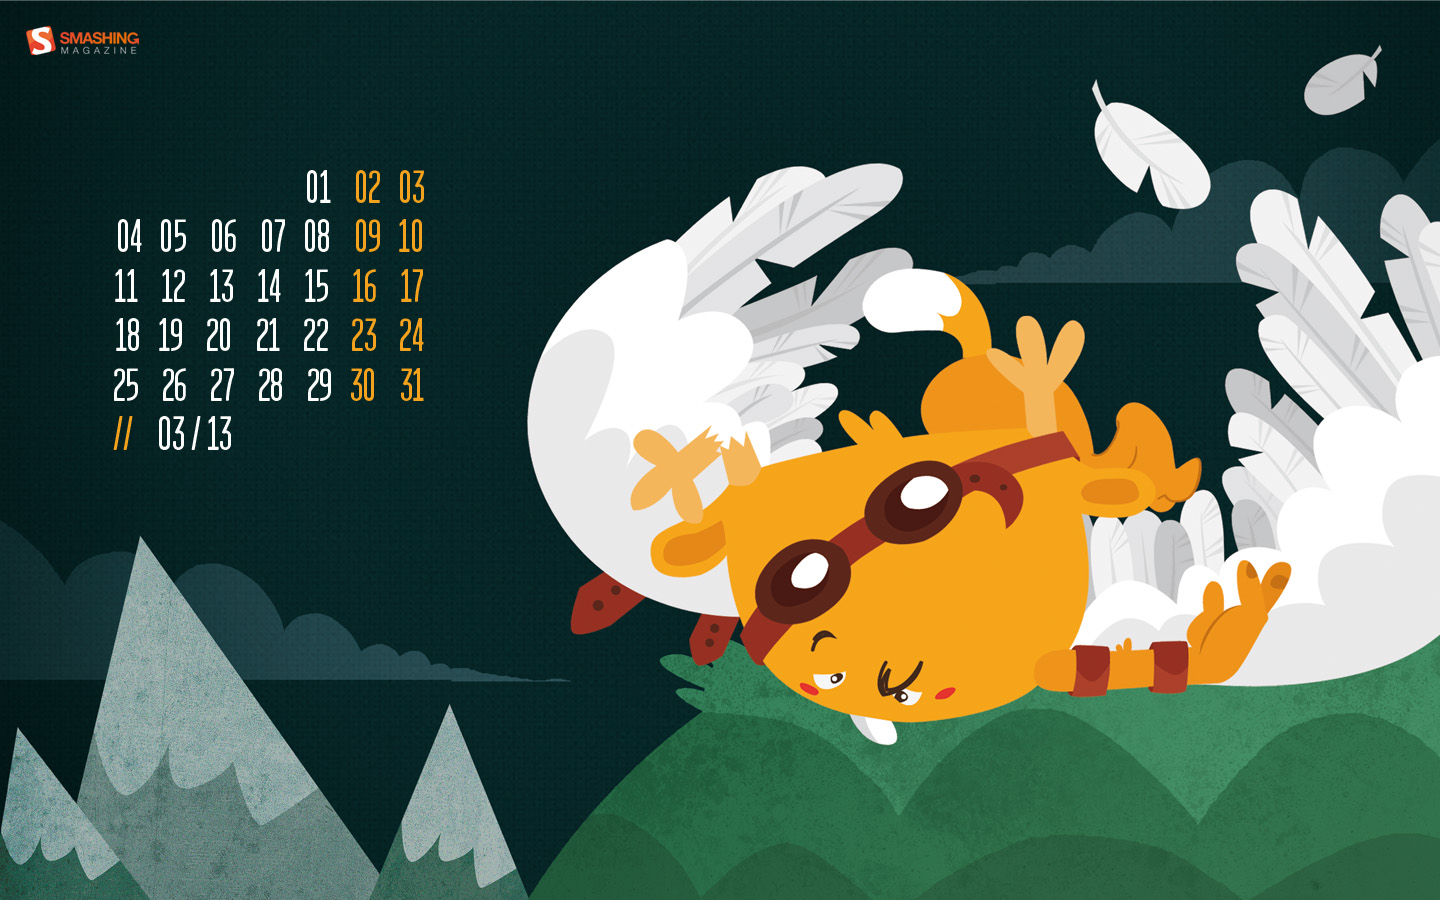 In January Calendar Wallpaper 32231